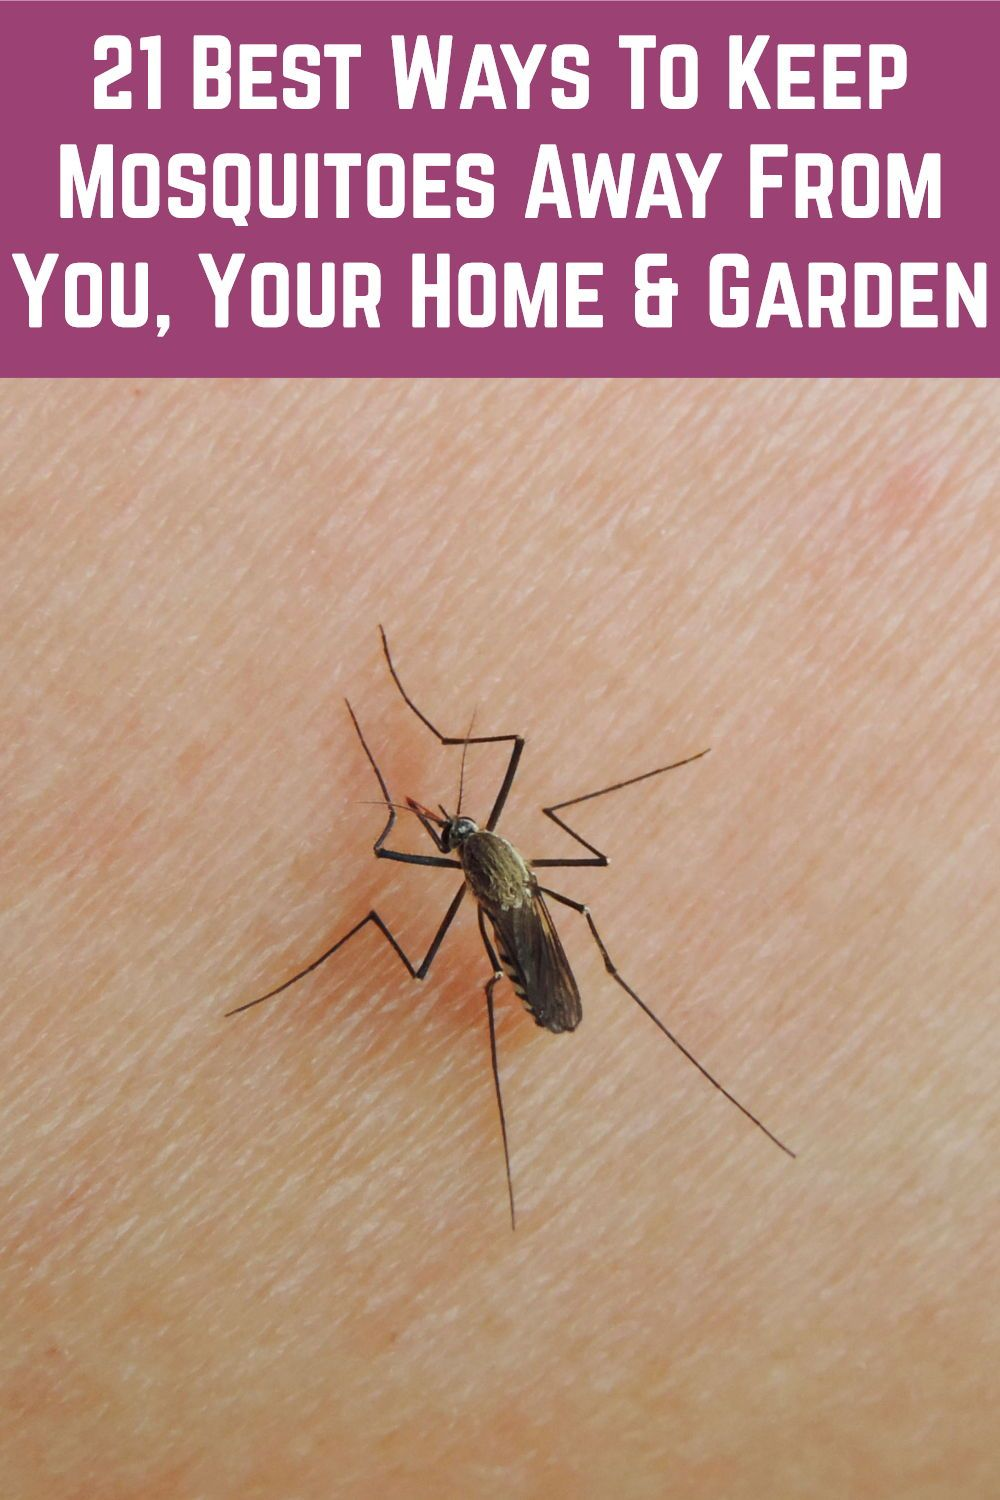 21 Best Ways To Keep Mosquitoes Away From You Your Home Garden Natural Mosquito Repellant Mosquito Bug Spray Recipe